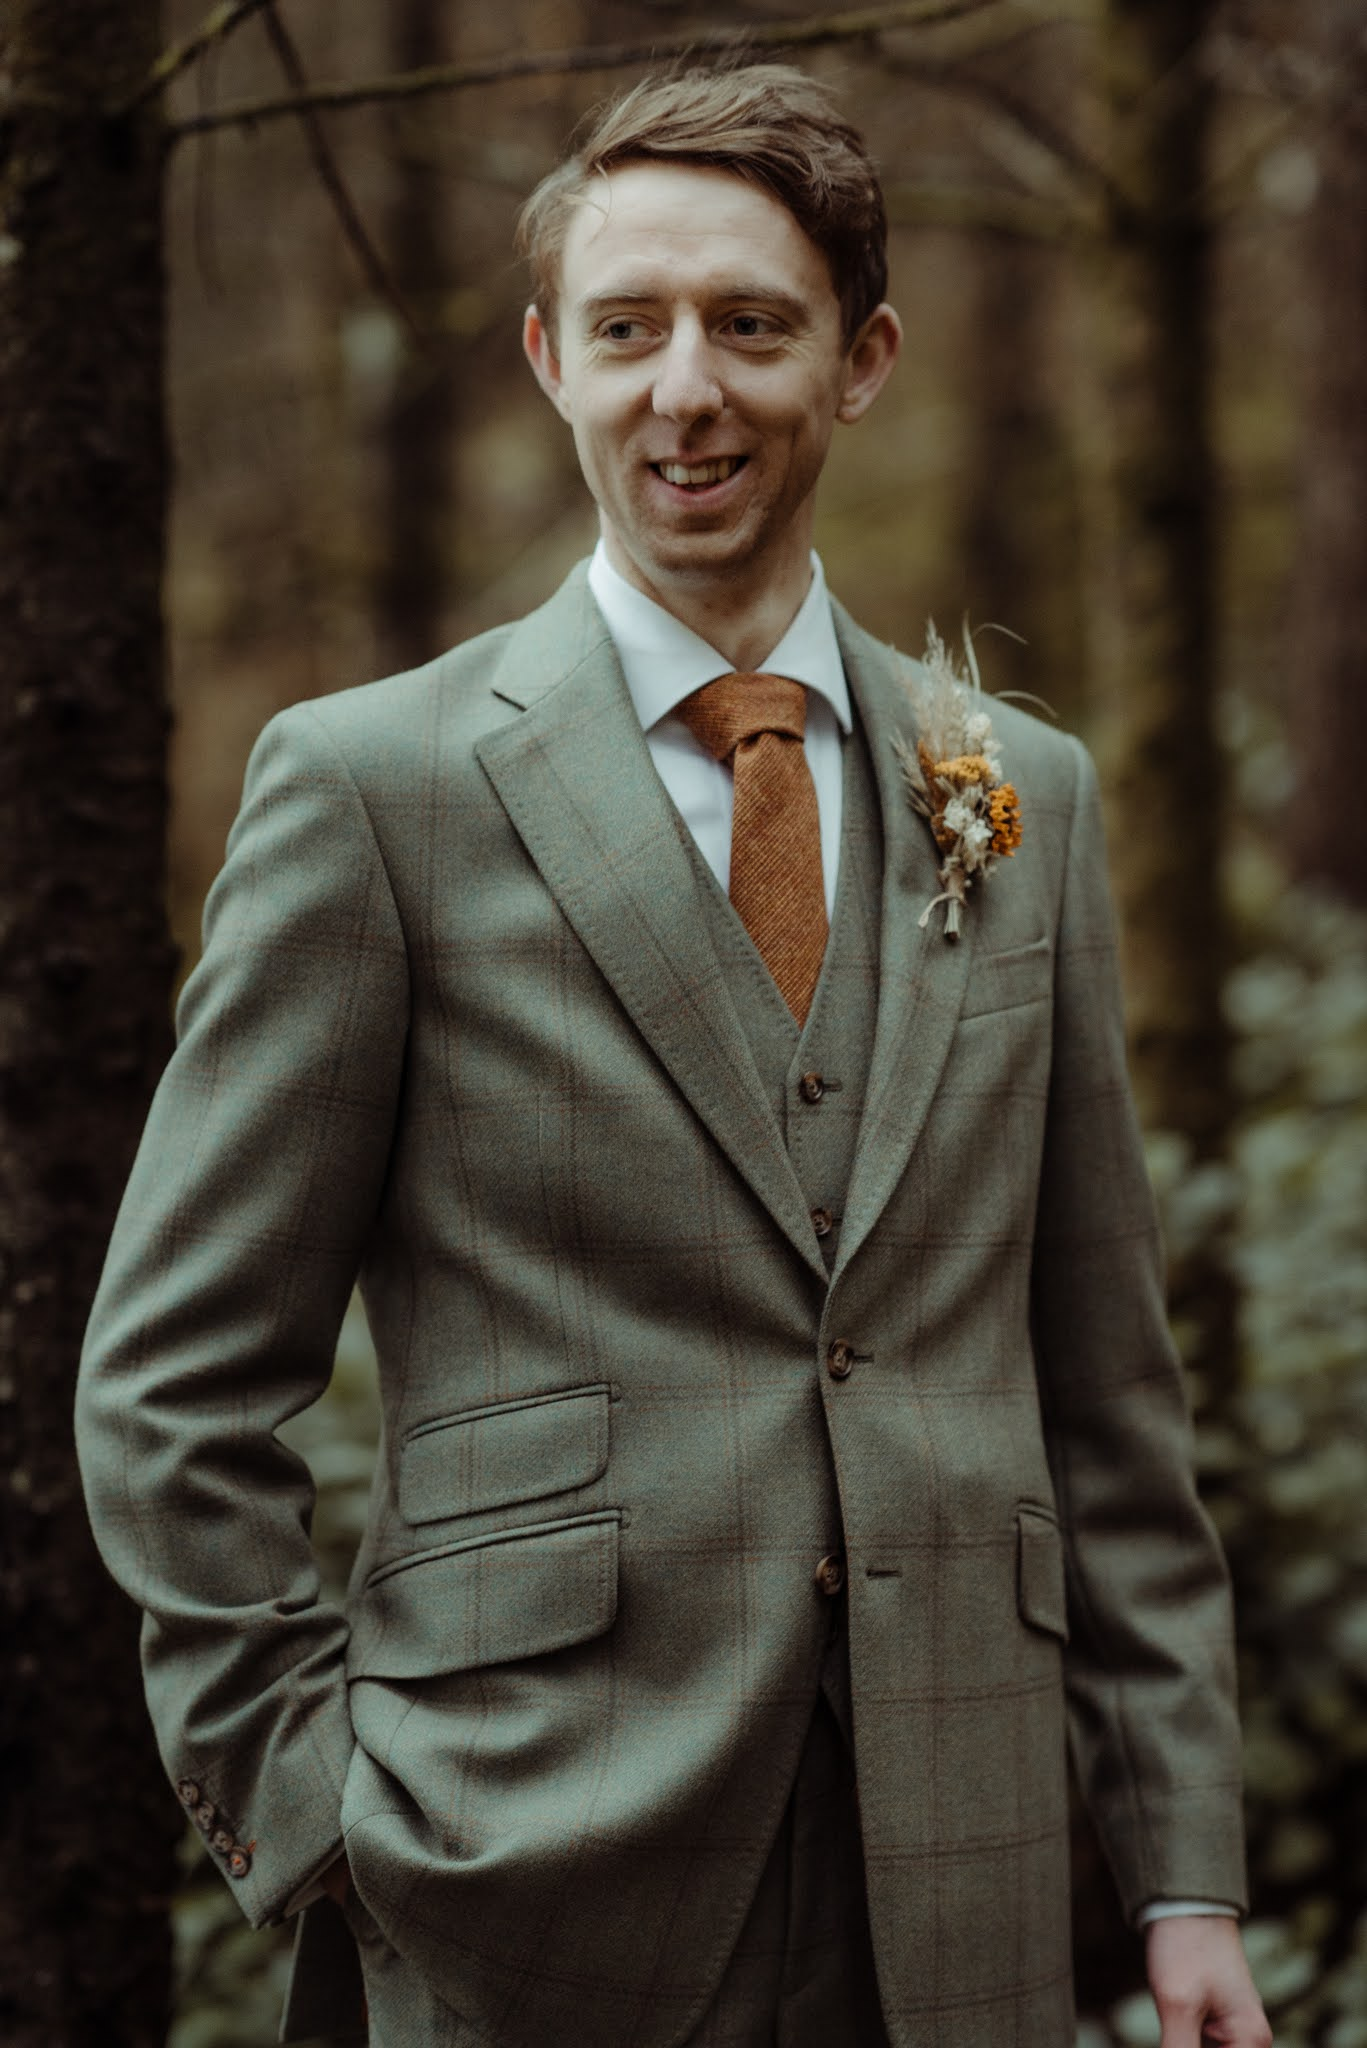 Getting a Made-to-Measure Suit from Livingston Bespoke, Castle Douglas visit dumfries and galloway